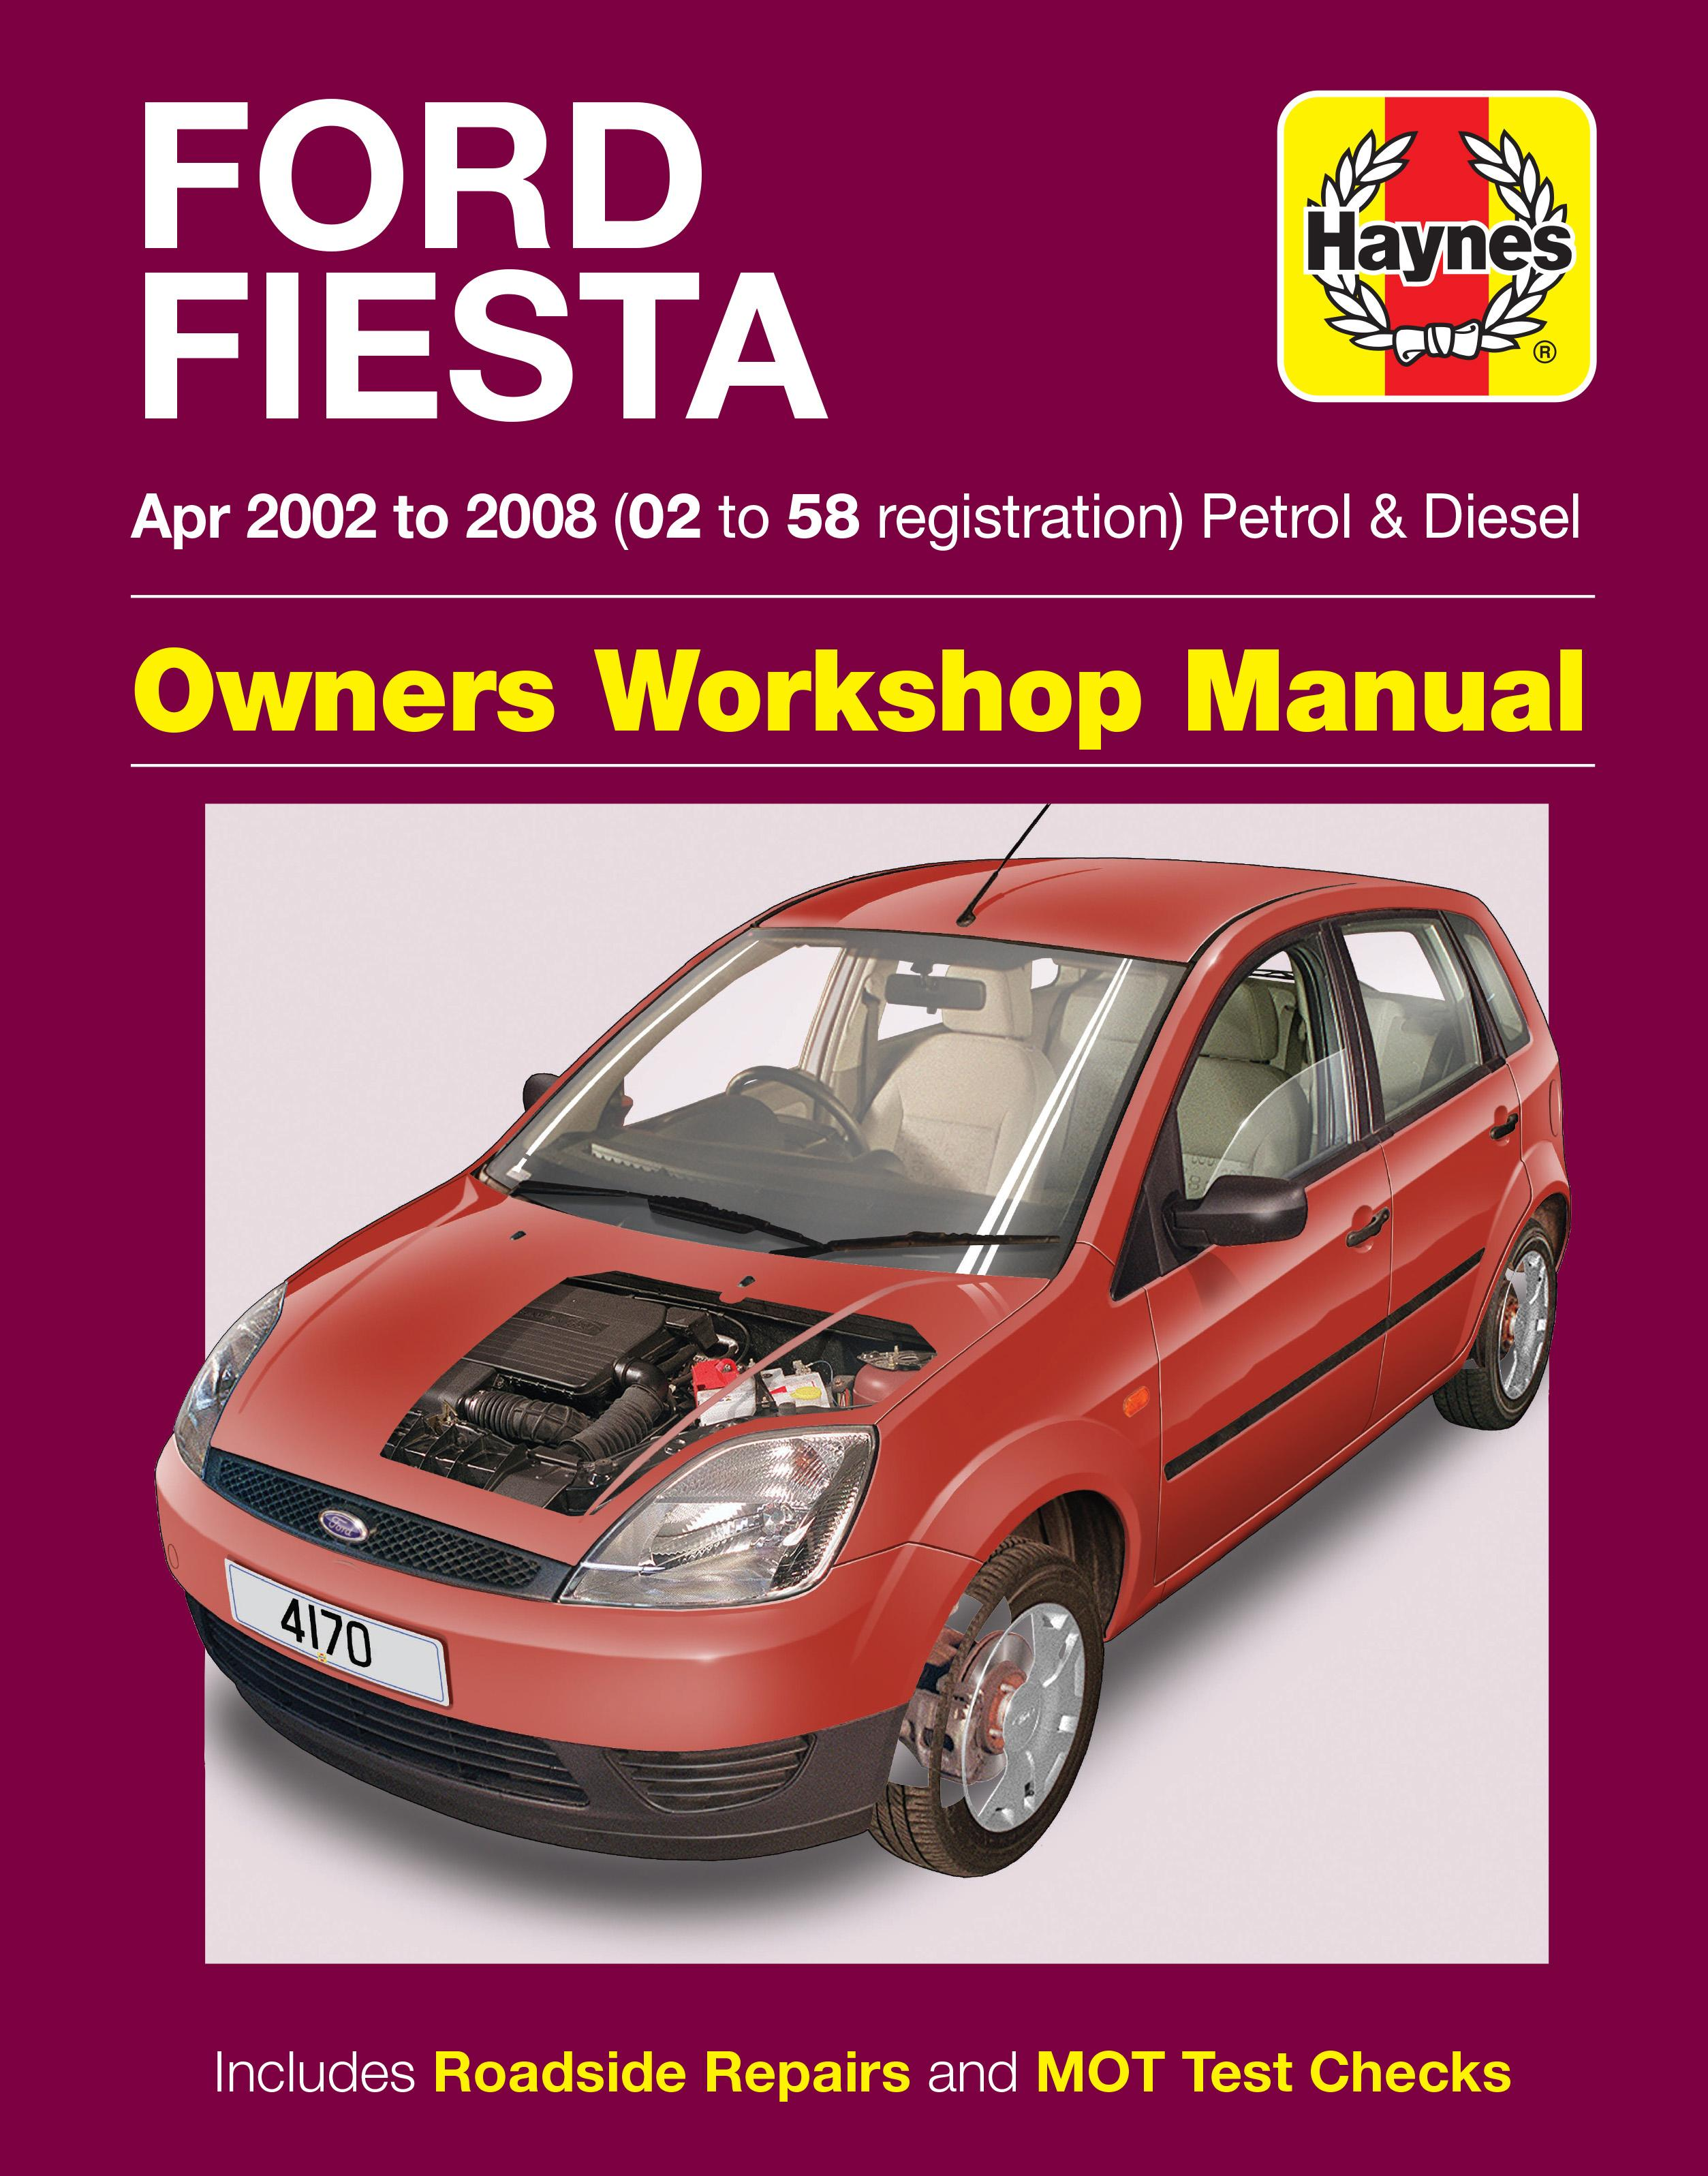 haynes ford fiesta apr 02 08 ma rh halfords com White Ford Fiesta Ford Fiesta Manual Transmission